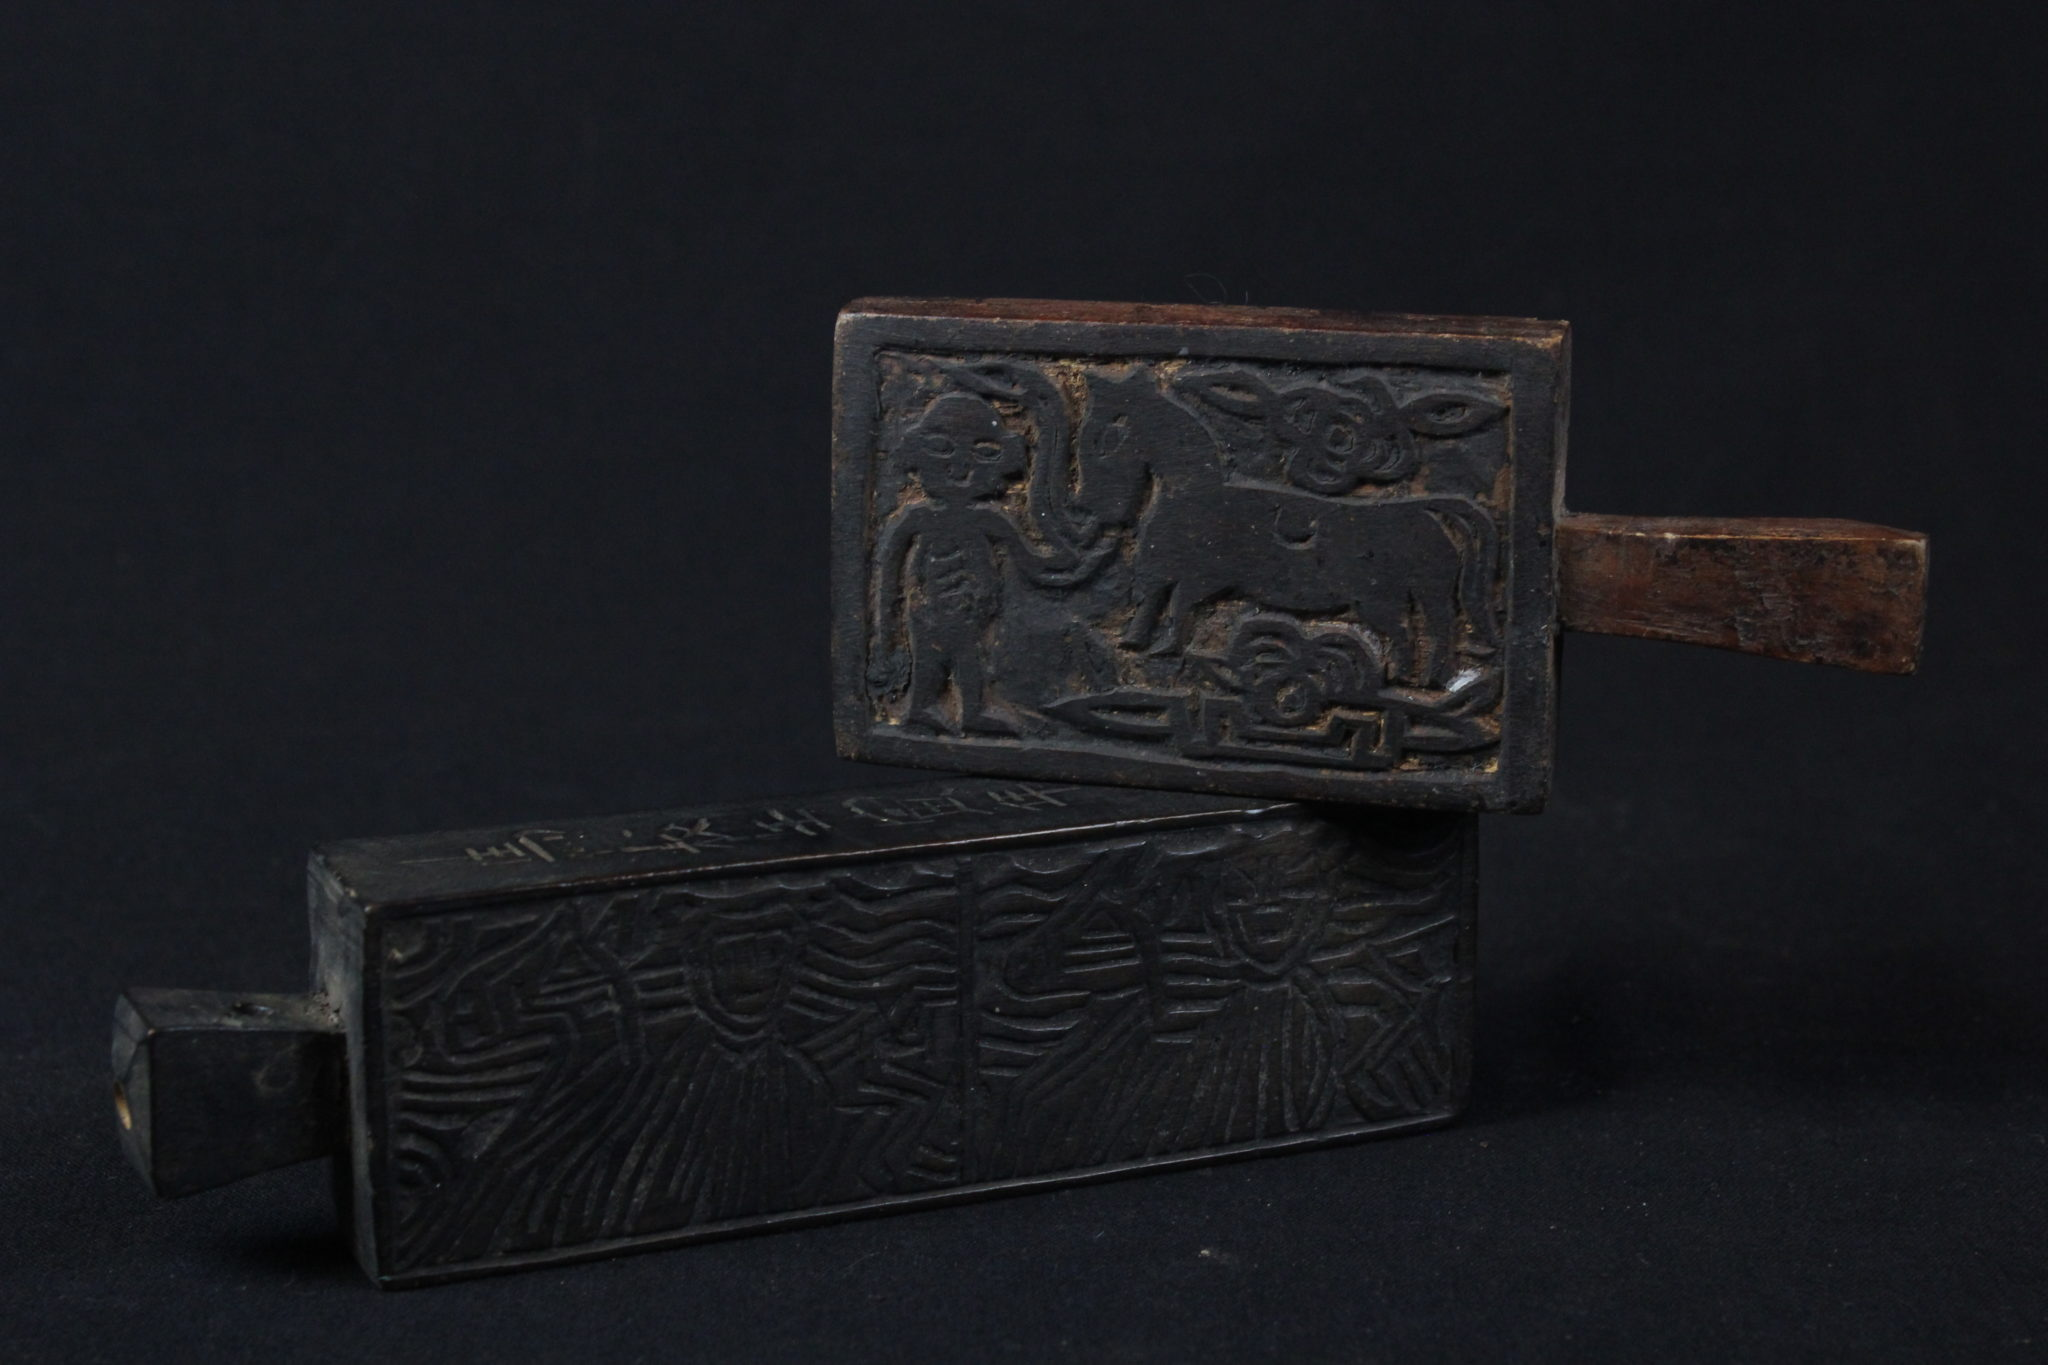 "Shaman Printing Block, Tuyen Quang province, Vietnam, Mid 20th c, Printing blocks are important shaman tools for creating talismans and ghost money to burn as offerings to deities. They were stamped on paper or on envelopes to mark the contents as holy. (Top - 2 ¼"" x ½' x 5', $110.); (Bottom, 1 ¾"" x 6 ¼"" x 1"", $90.)"